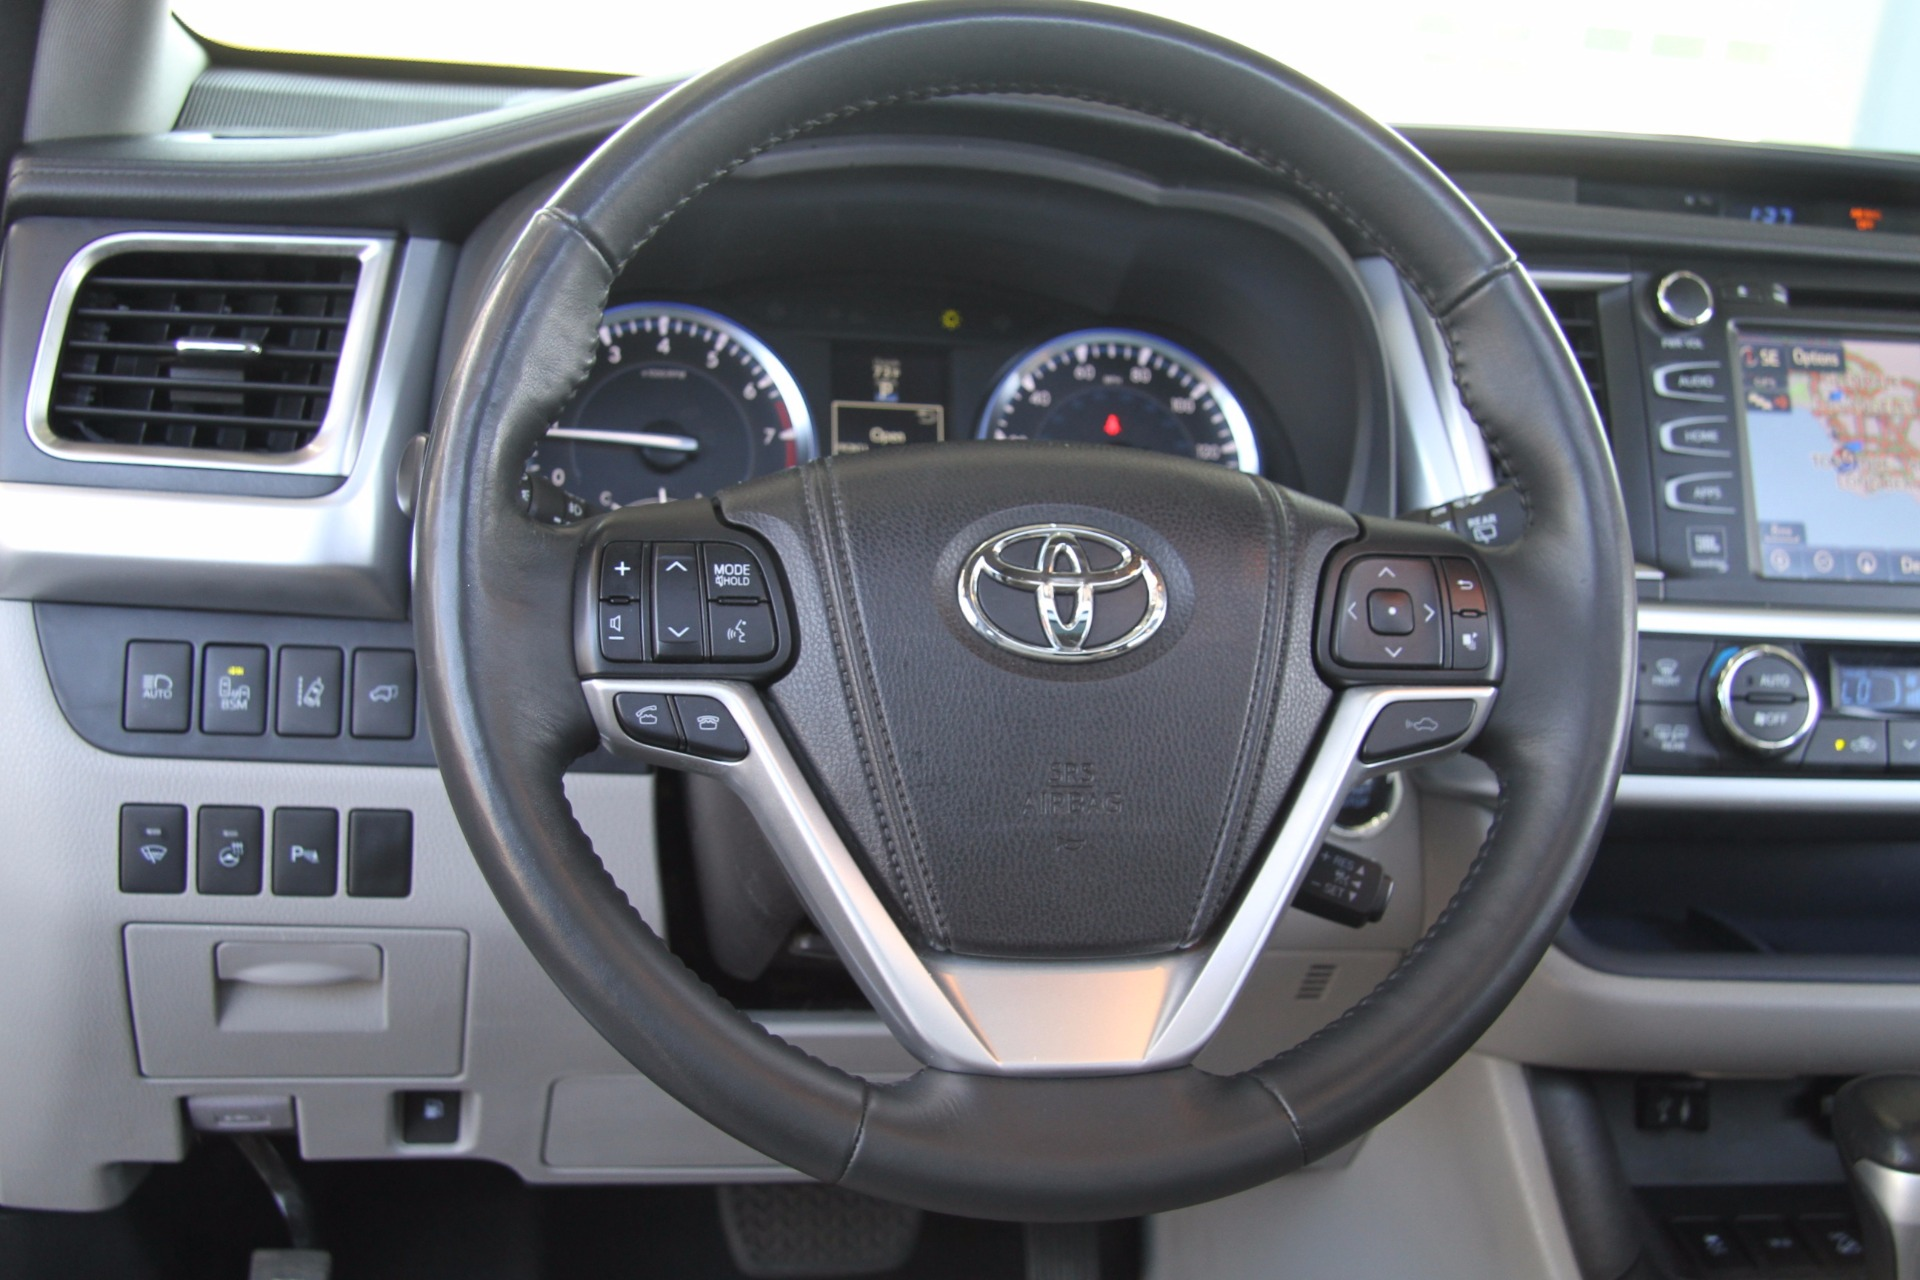 Toyota Dealership Near Me >> 2015 Toyota Highlander Limited Stock # 5829B for sale near ...